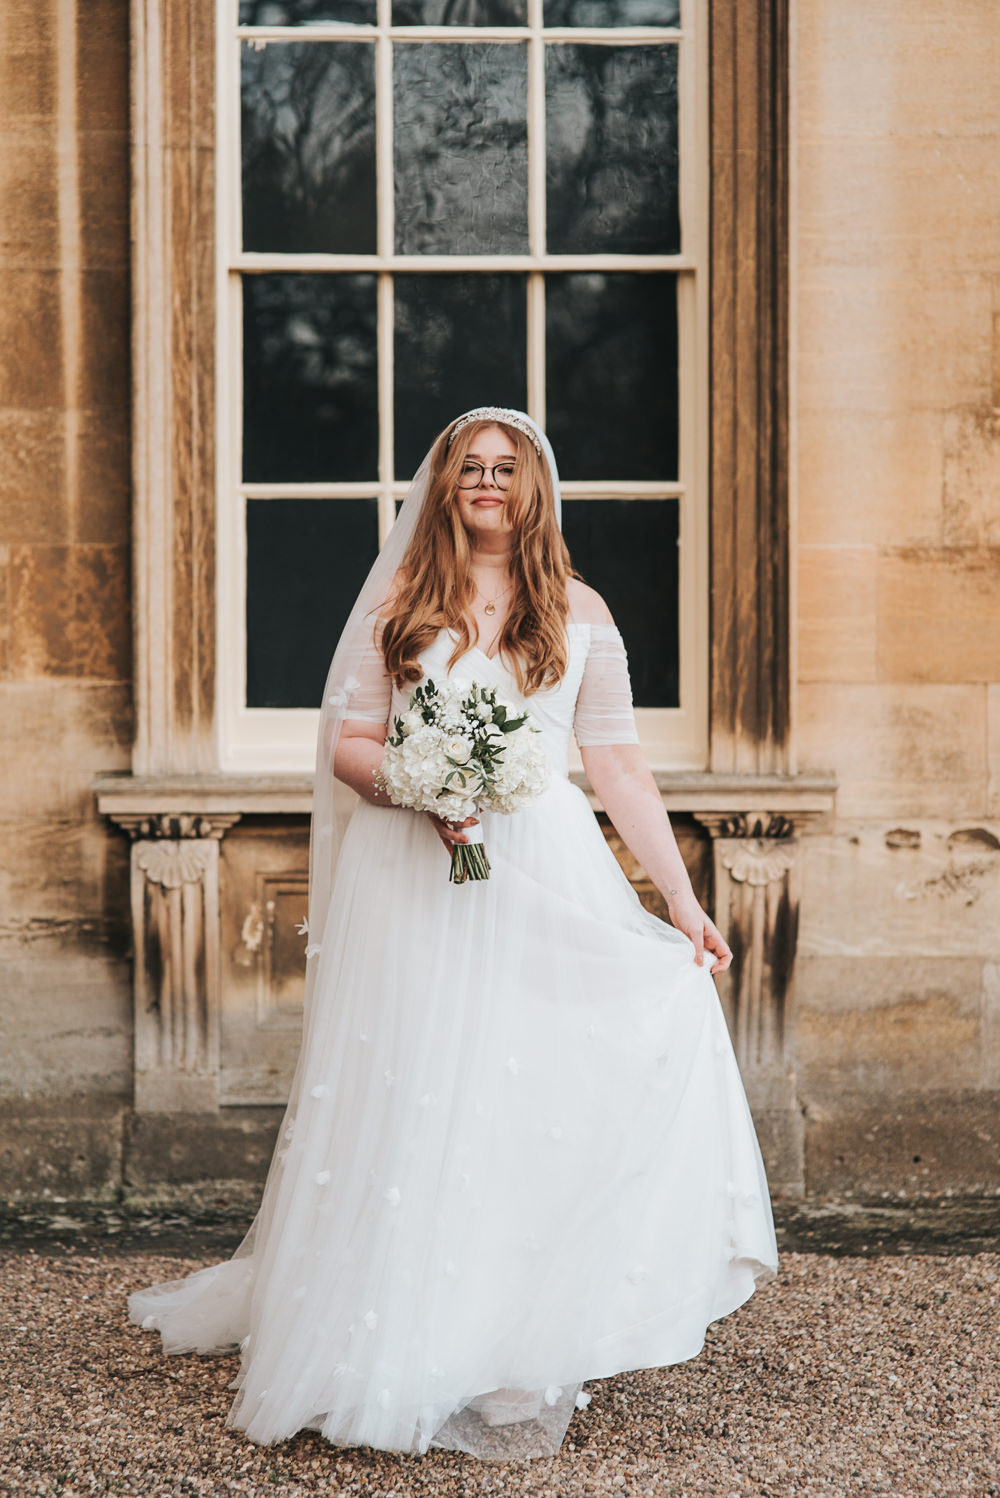 Dress Gown Bride Bridal Sleeves Train Tulle Prestwold Hall Wedding Pear & Bear Photography